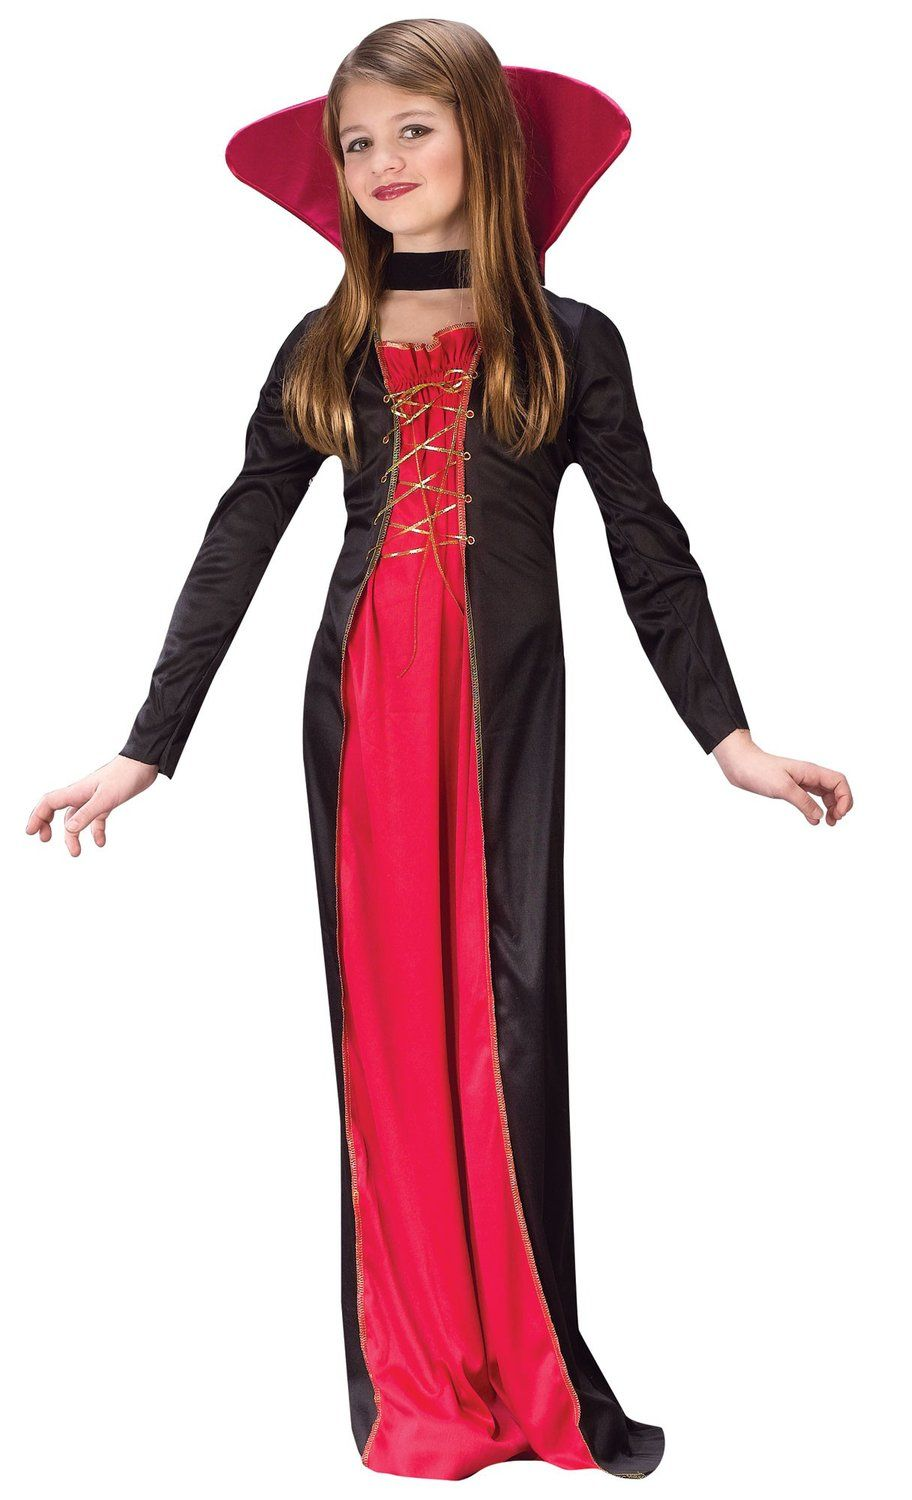 tween girl v&ire costumes | Kids Victorian V&iress Costume Kids V&ire Costumes - Mr. Costumes  sc 1 st  Pinterest & tween girl vampire costumes | Kids Victorian Vampiress Costume Kids ...